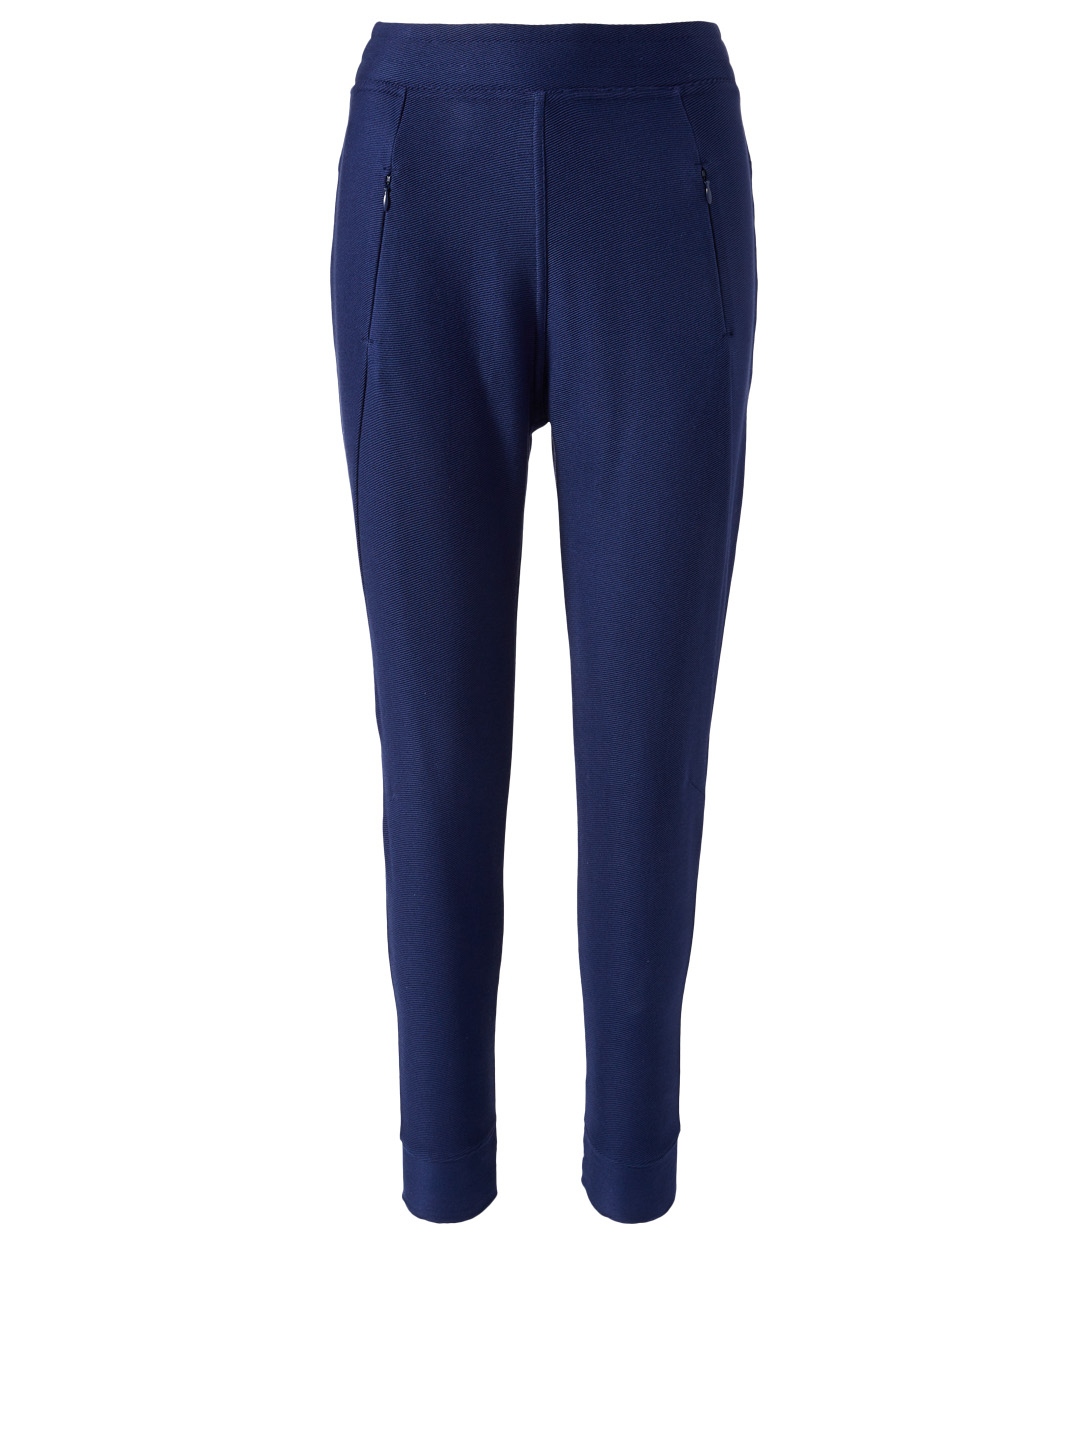 GIRLFRIEND COLLECTIVE Lux Organic Pima Cotton Sweatpants H Project Blue